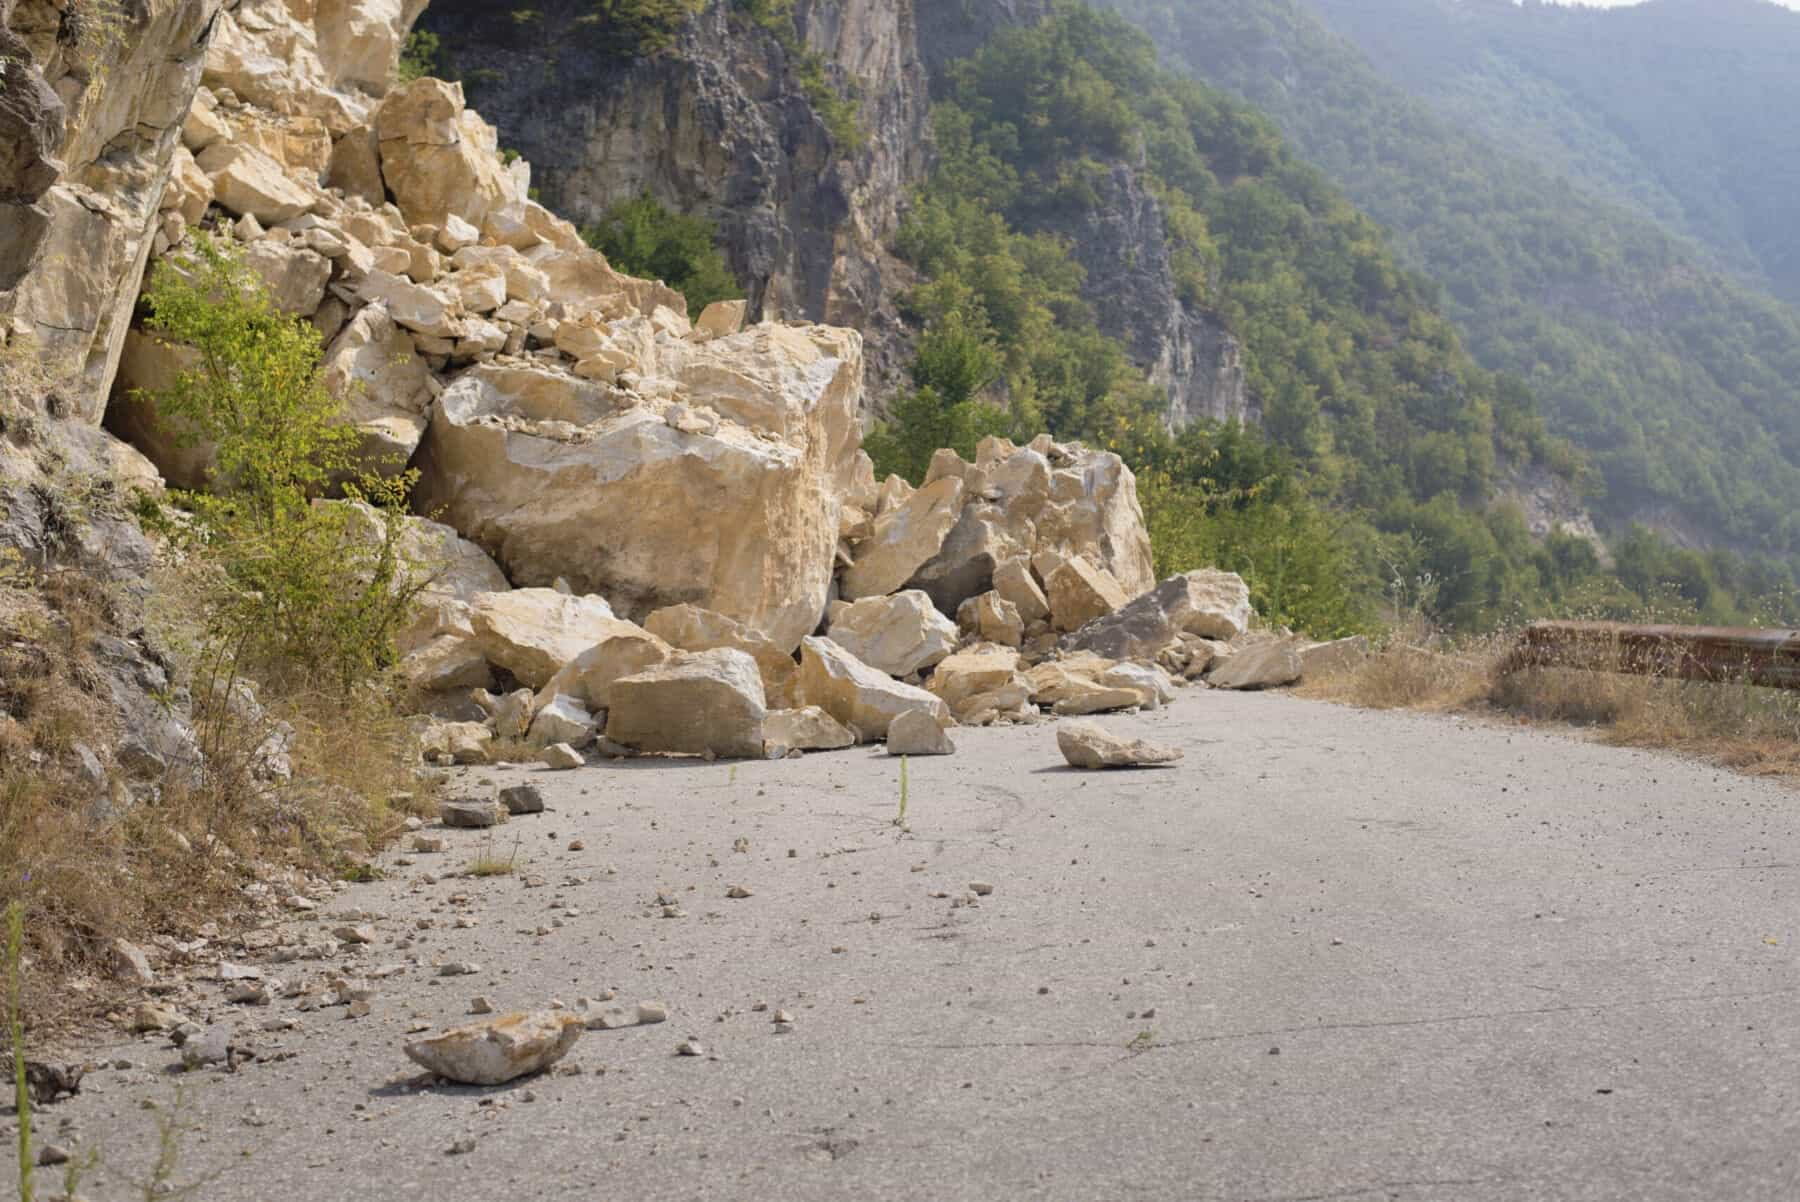 rockslide, roadblock